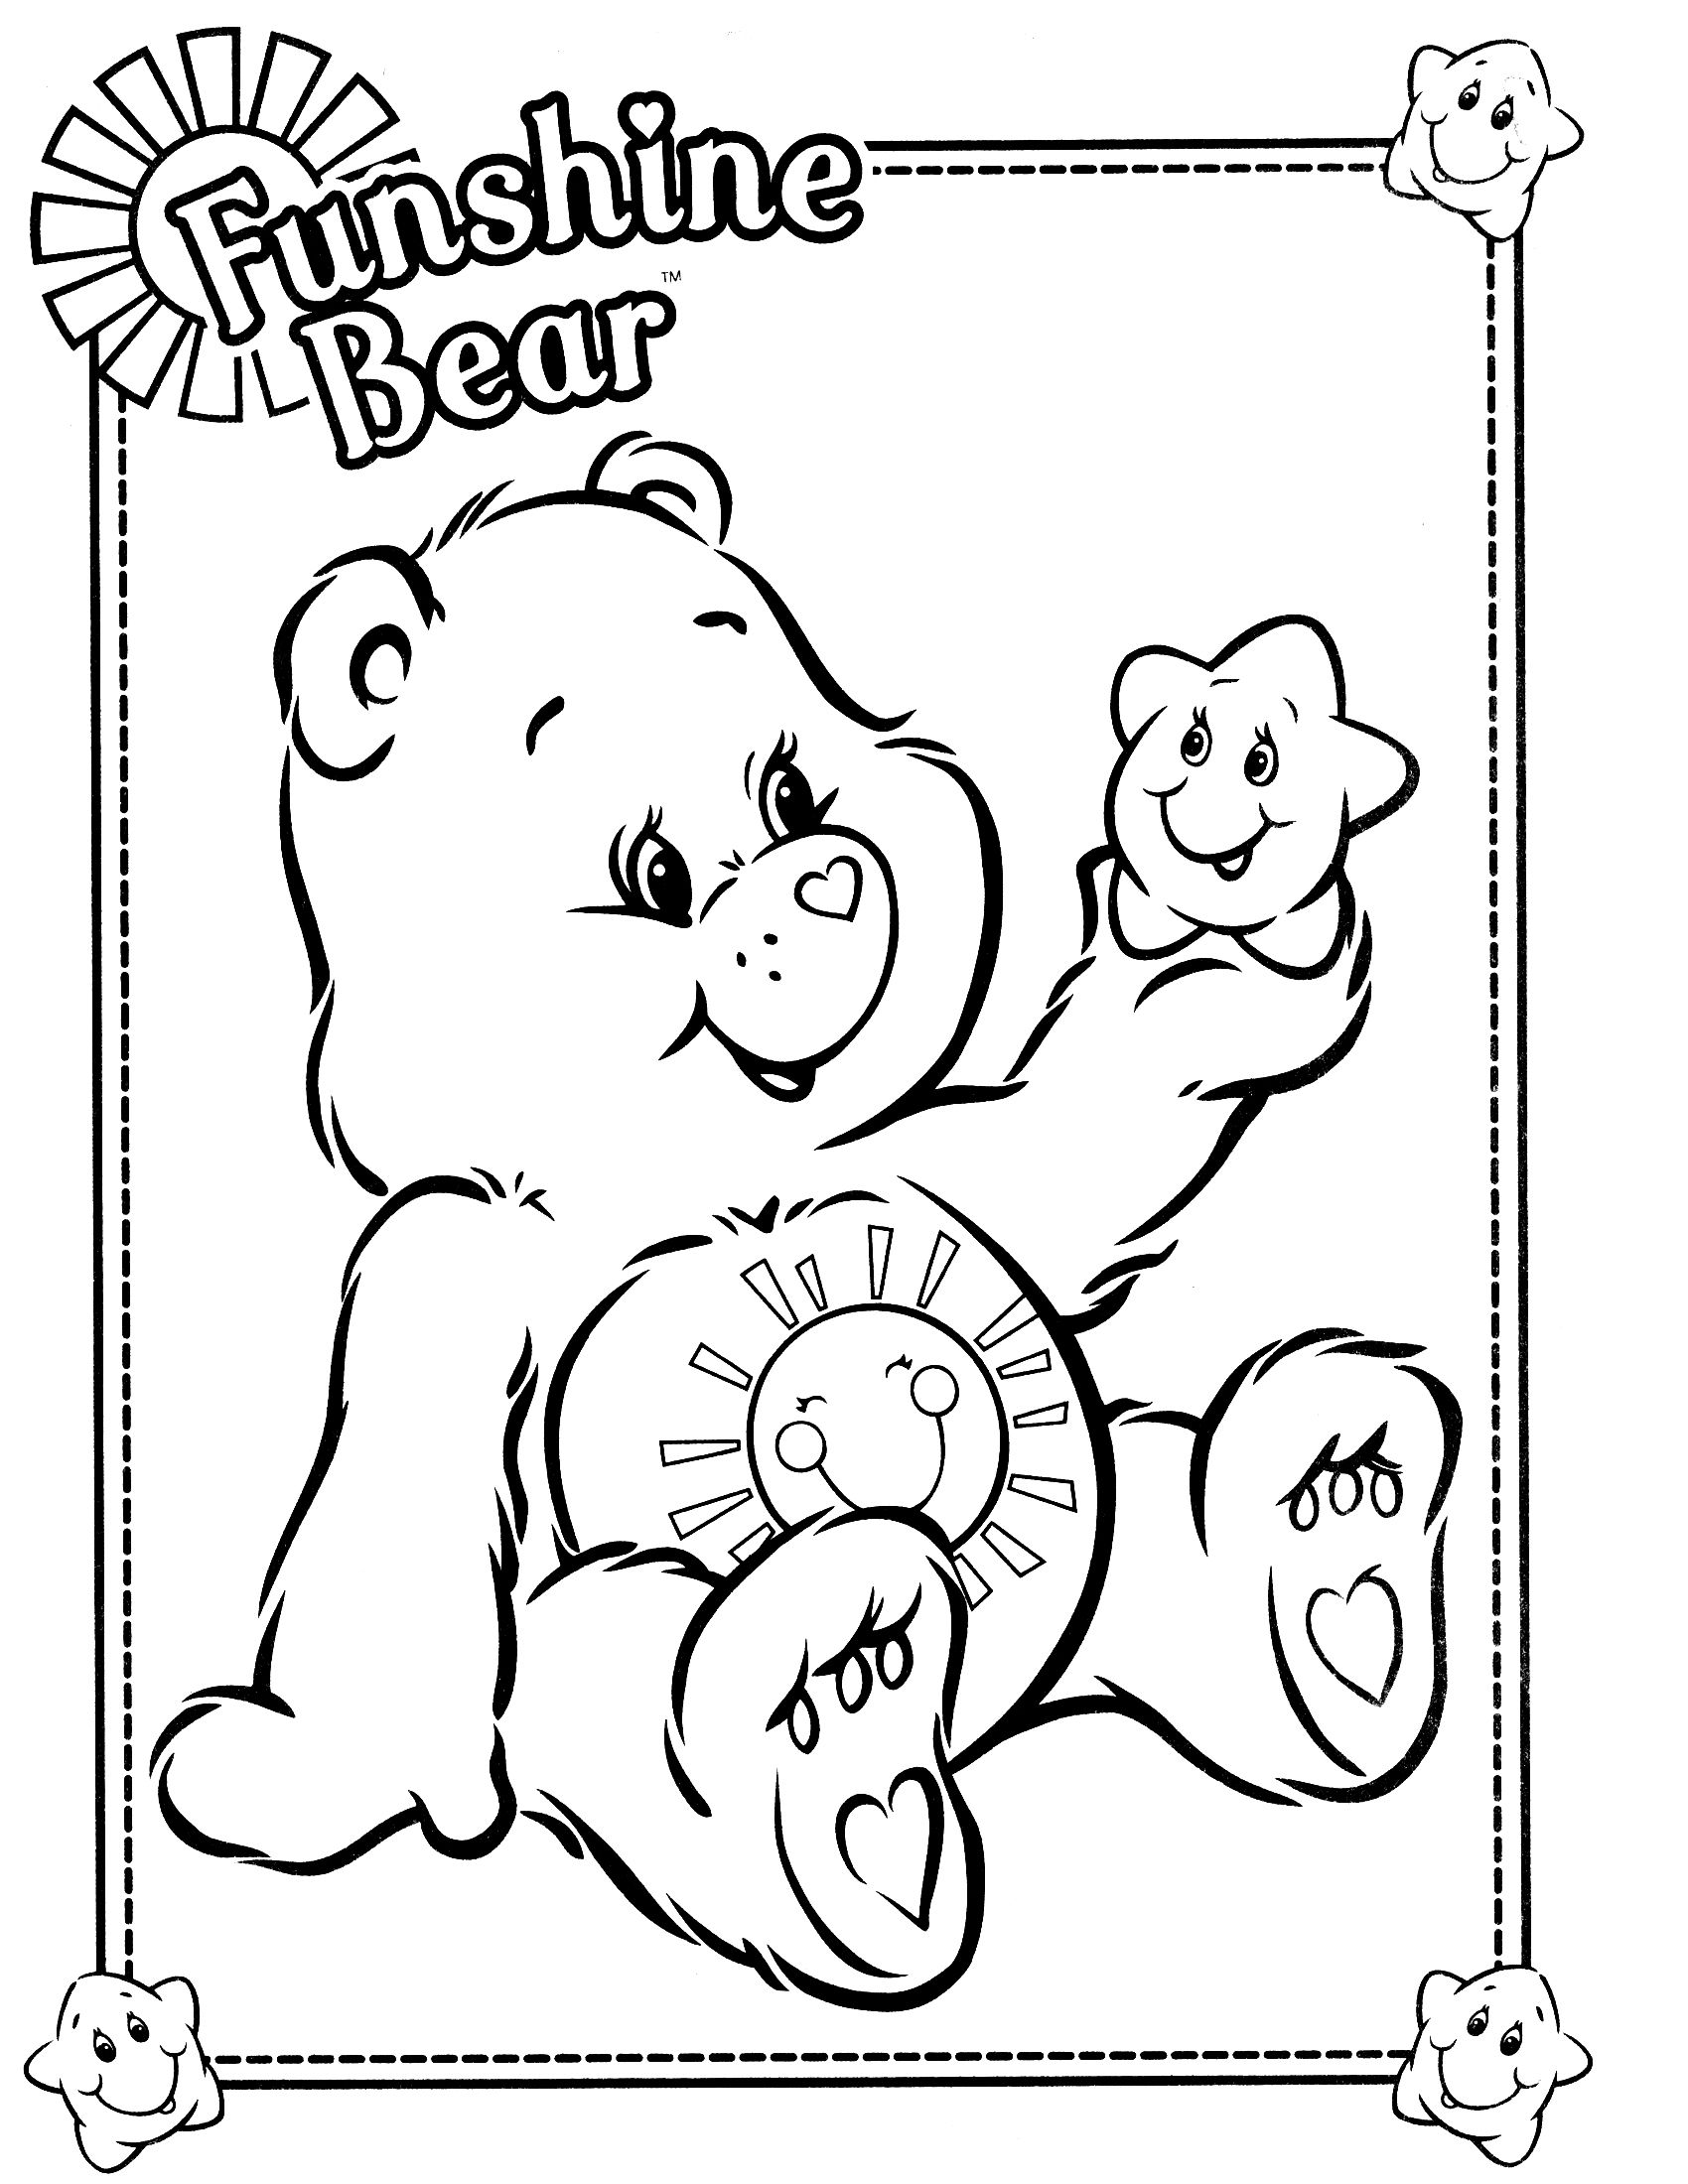 Care Bears Coloring Page Bear Coloring Pages Coloring Books